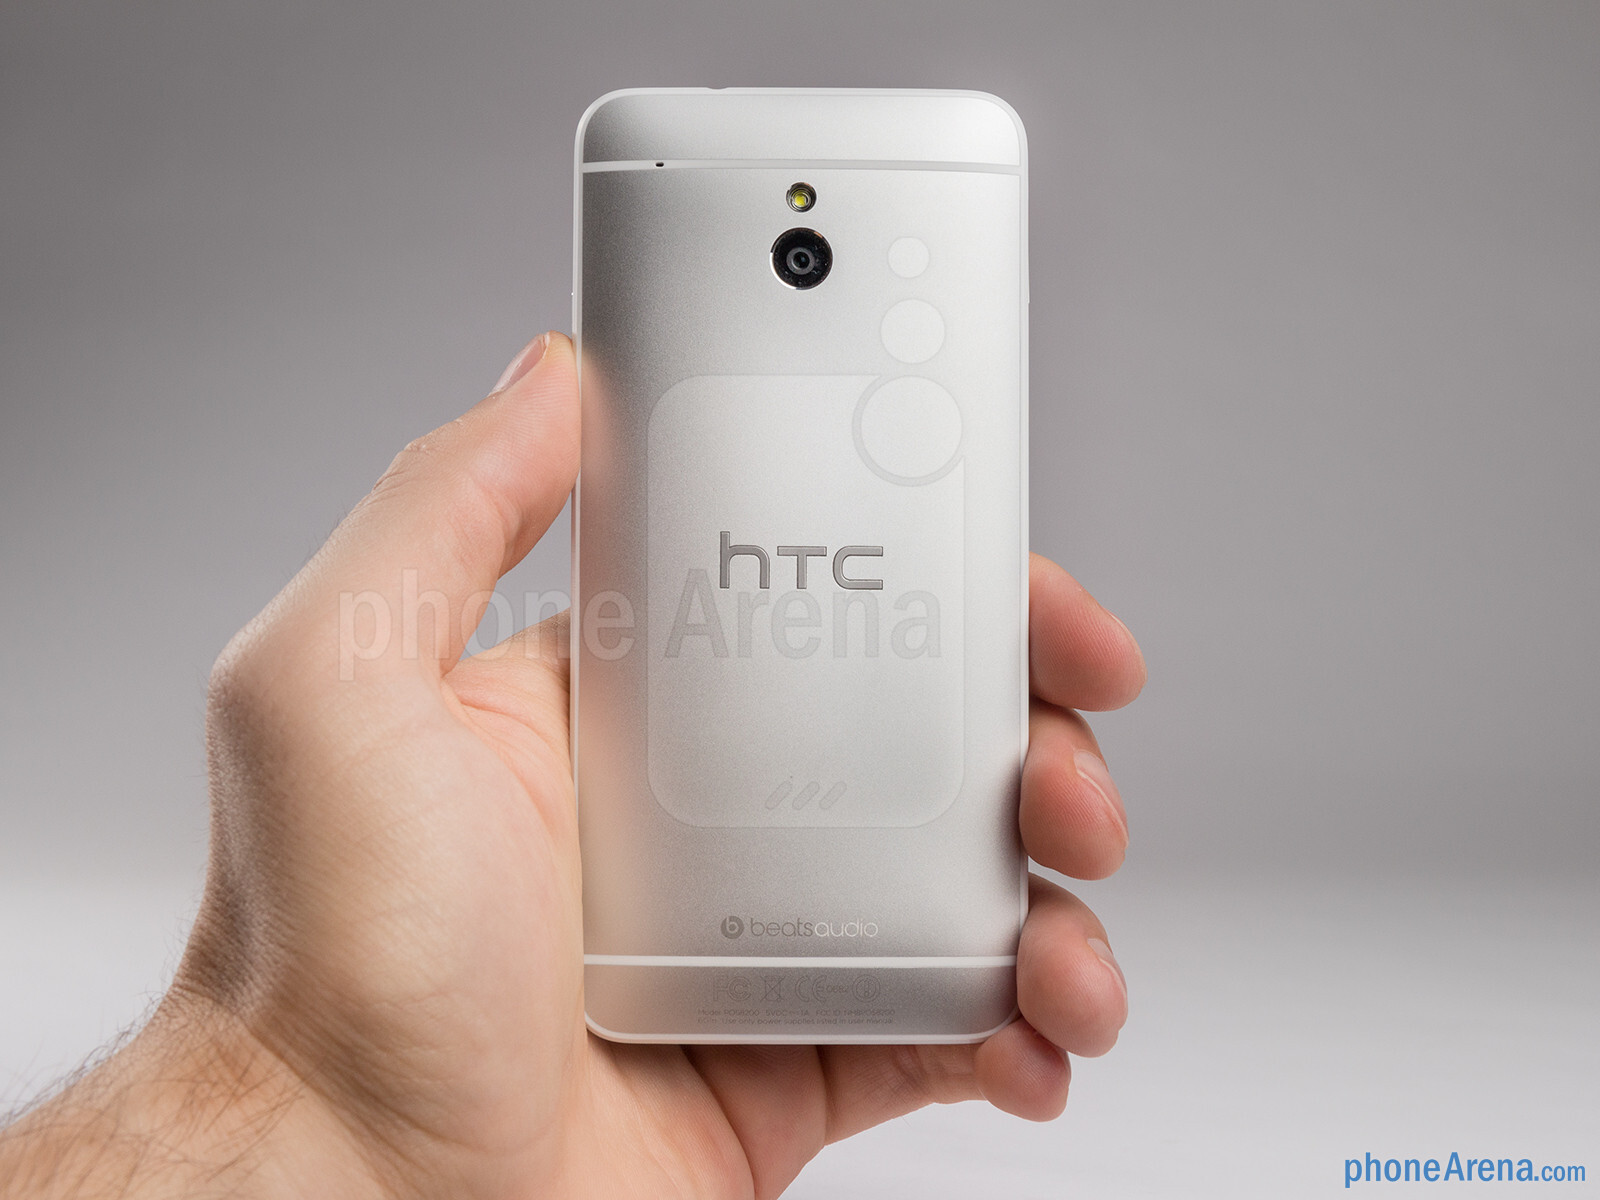 htc one mini review. Black Bedroom Furniture Sets. Home Design Ideas